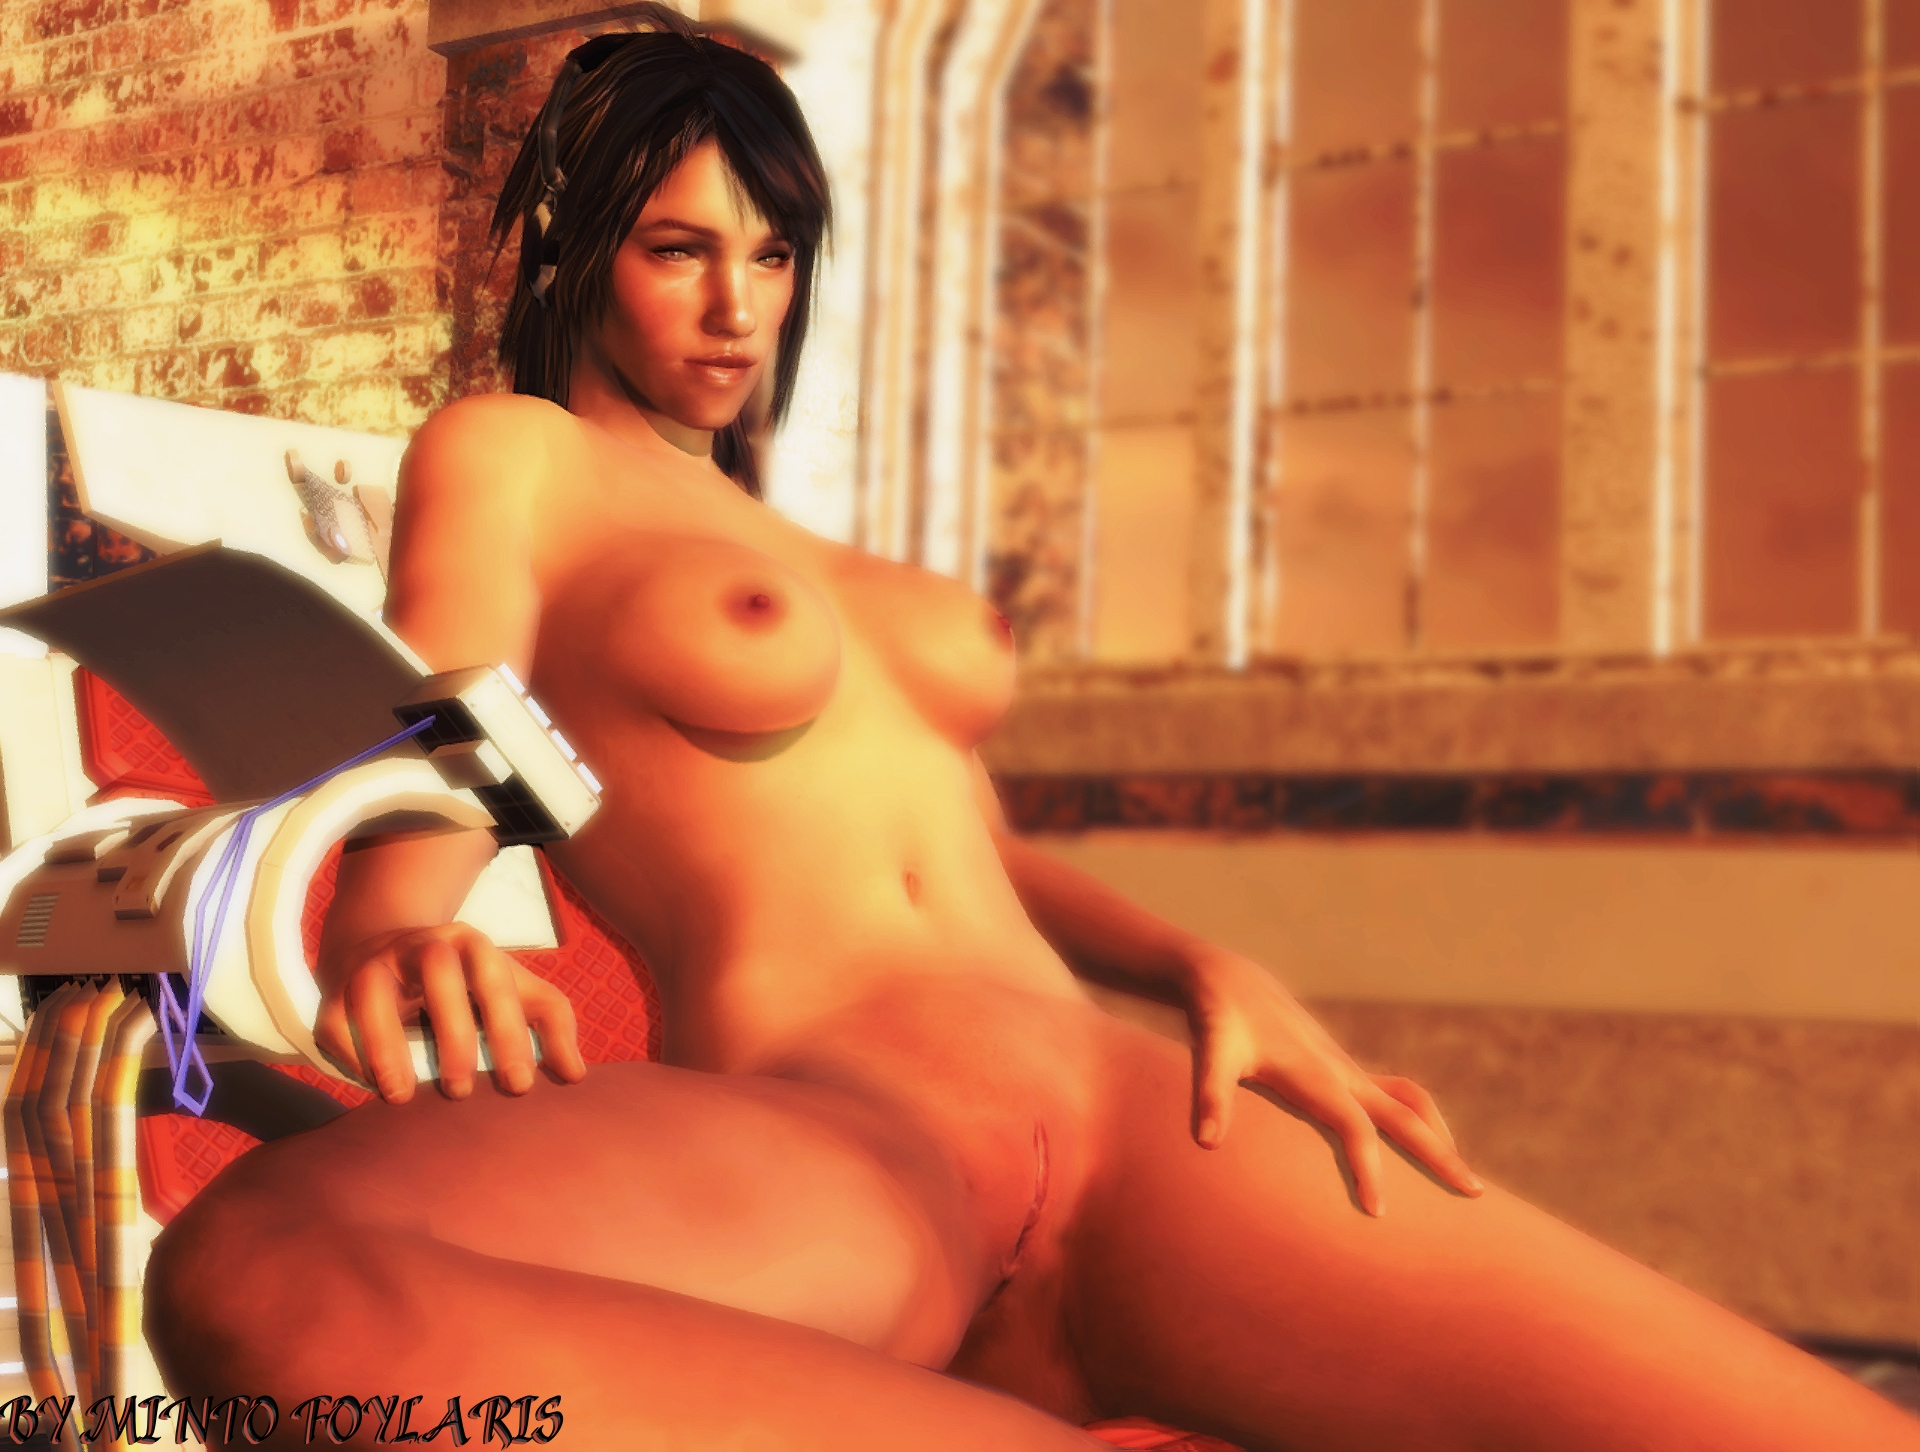 Assassin's creed rebecca nude exploited clip